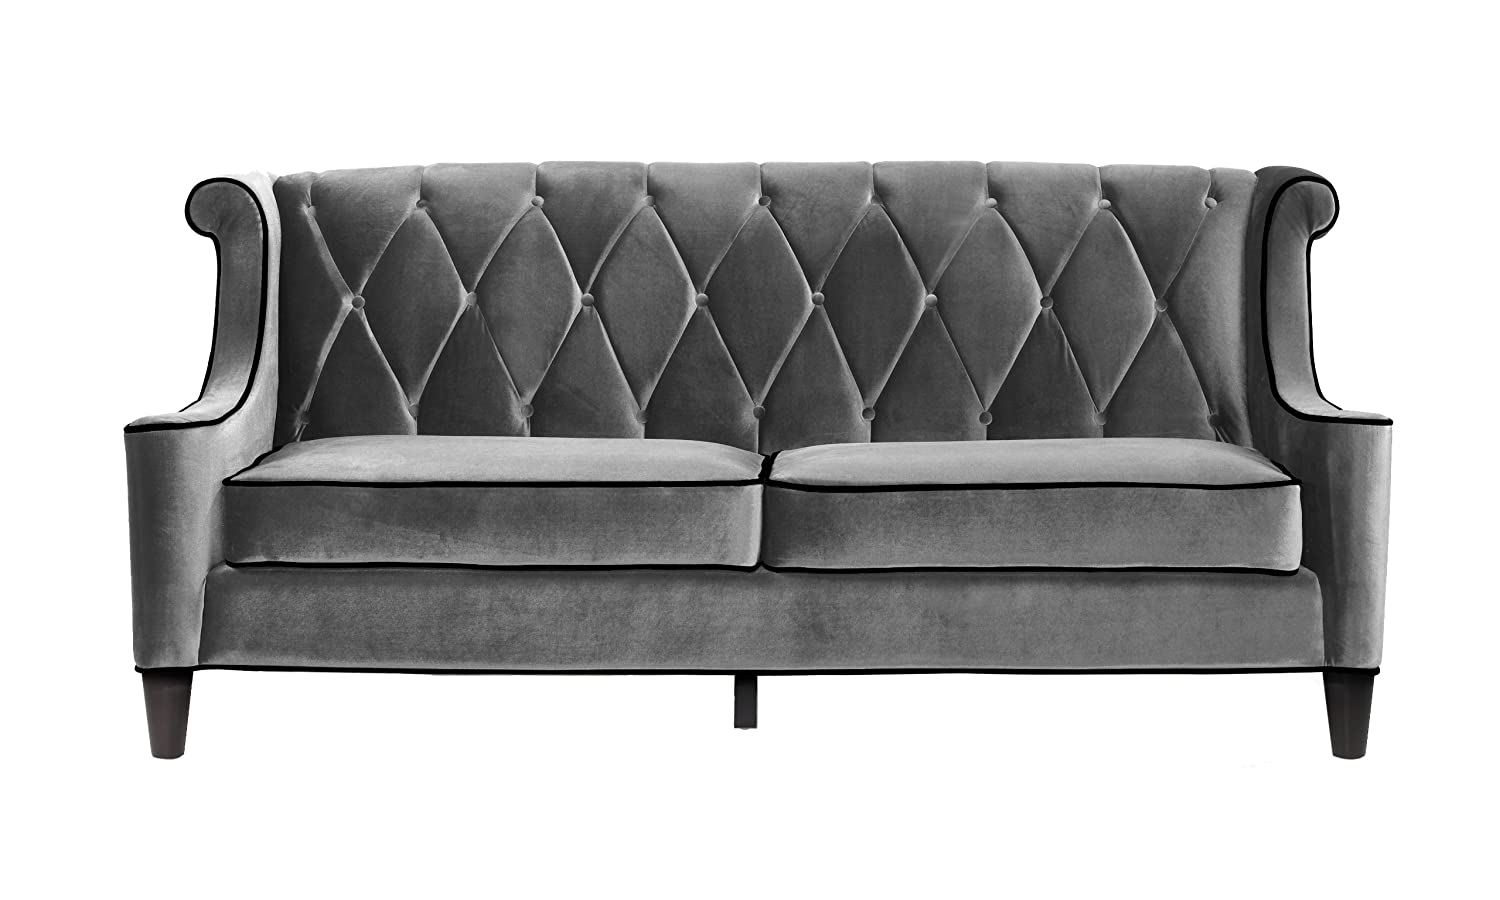 Amazon.com: Armen Living LC8443GRAY Barrister Sofa In Grey Velvet And Black  Wood Finish: Kitchen U0026 Dining